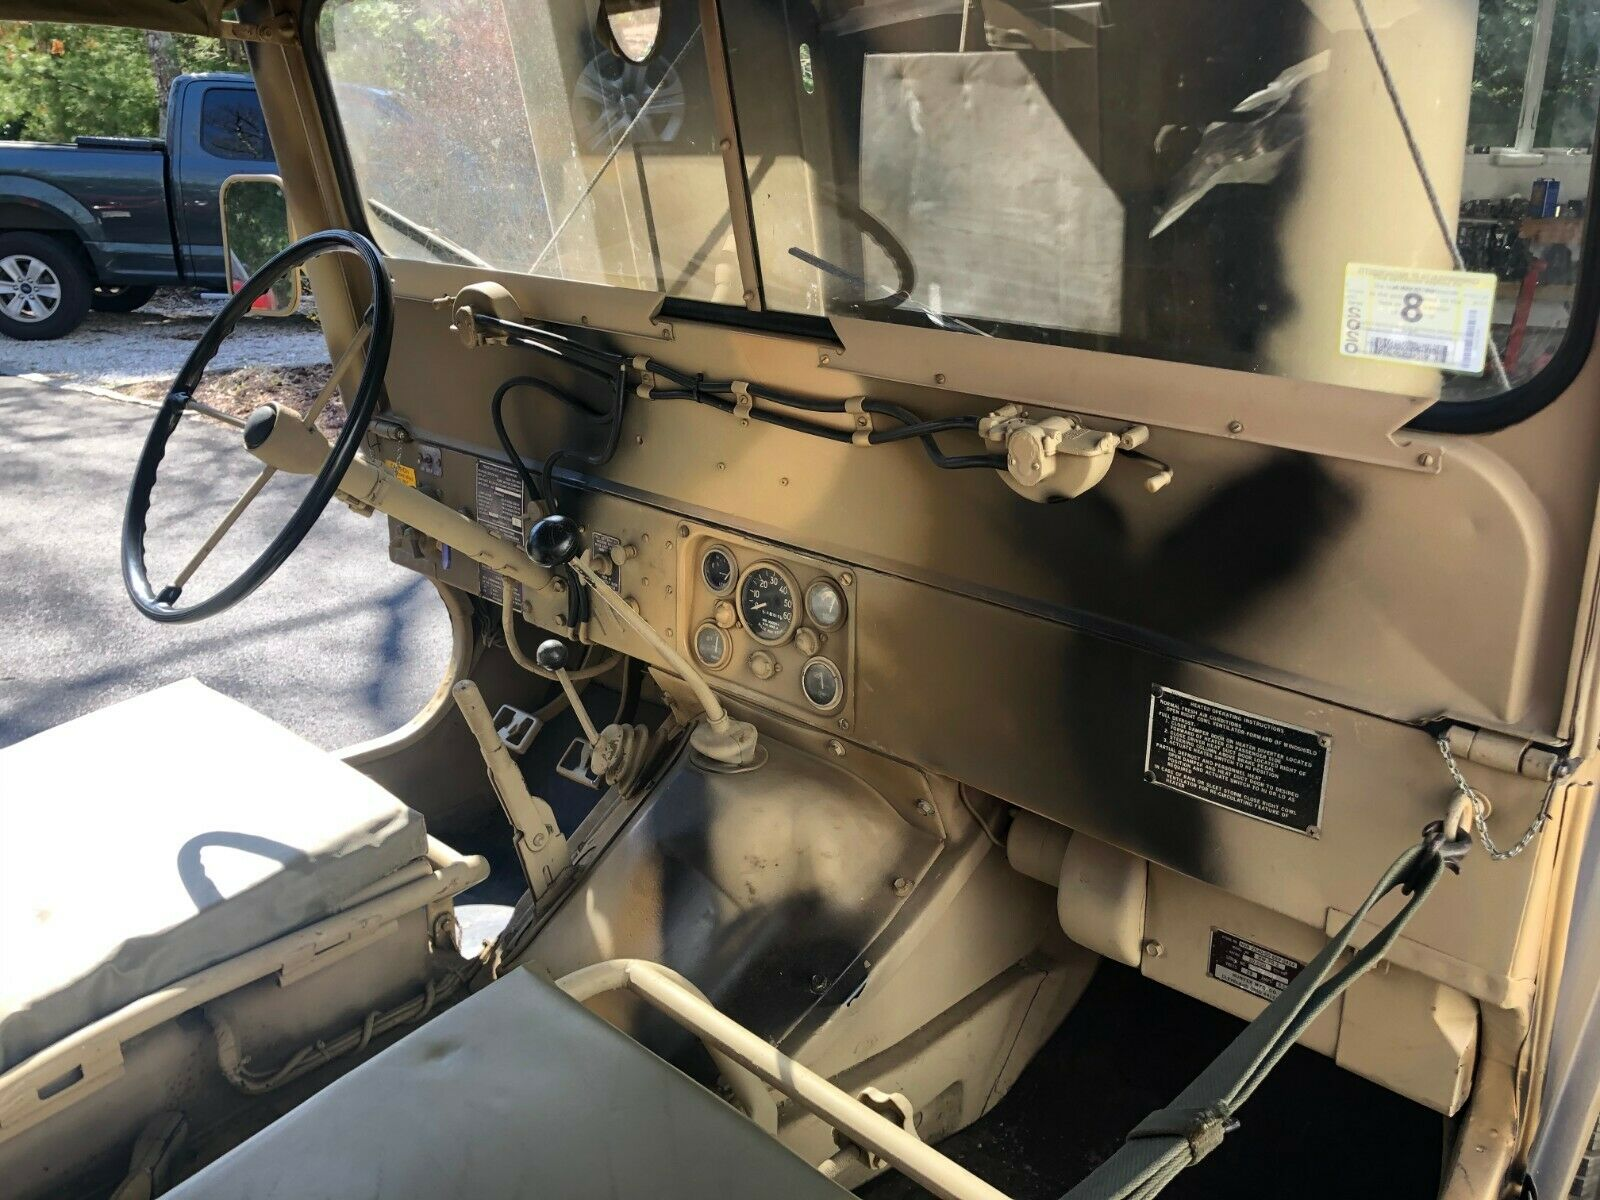 nicely maintained 1967 Ford Mutt M151a1 Military